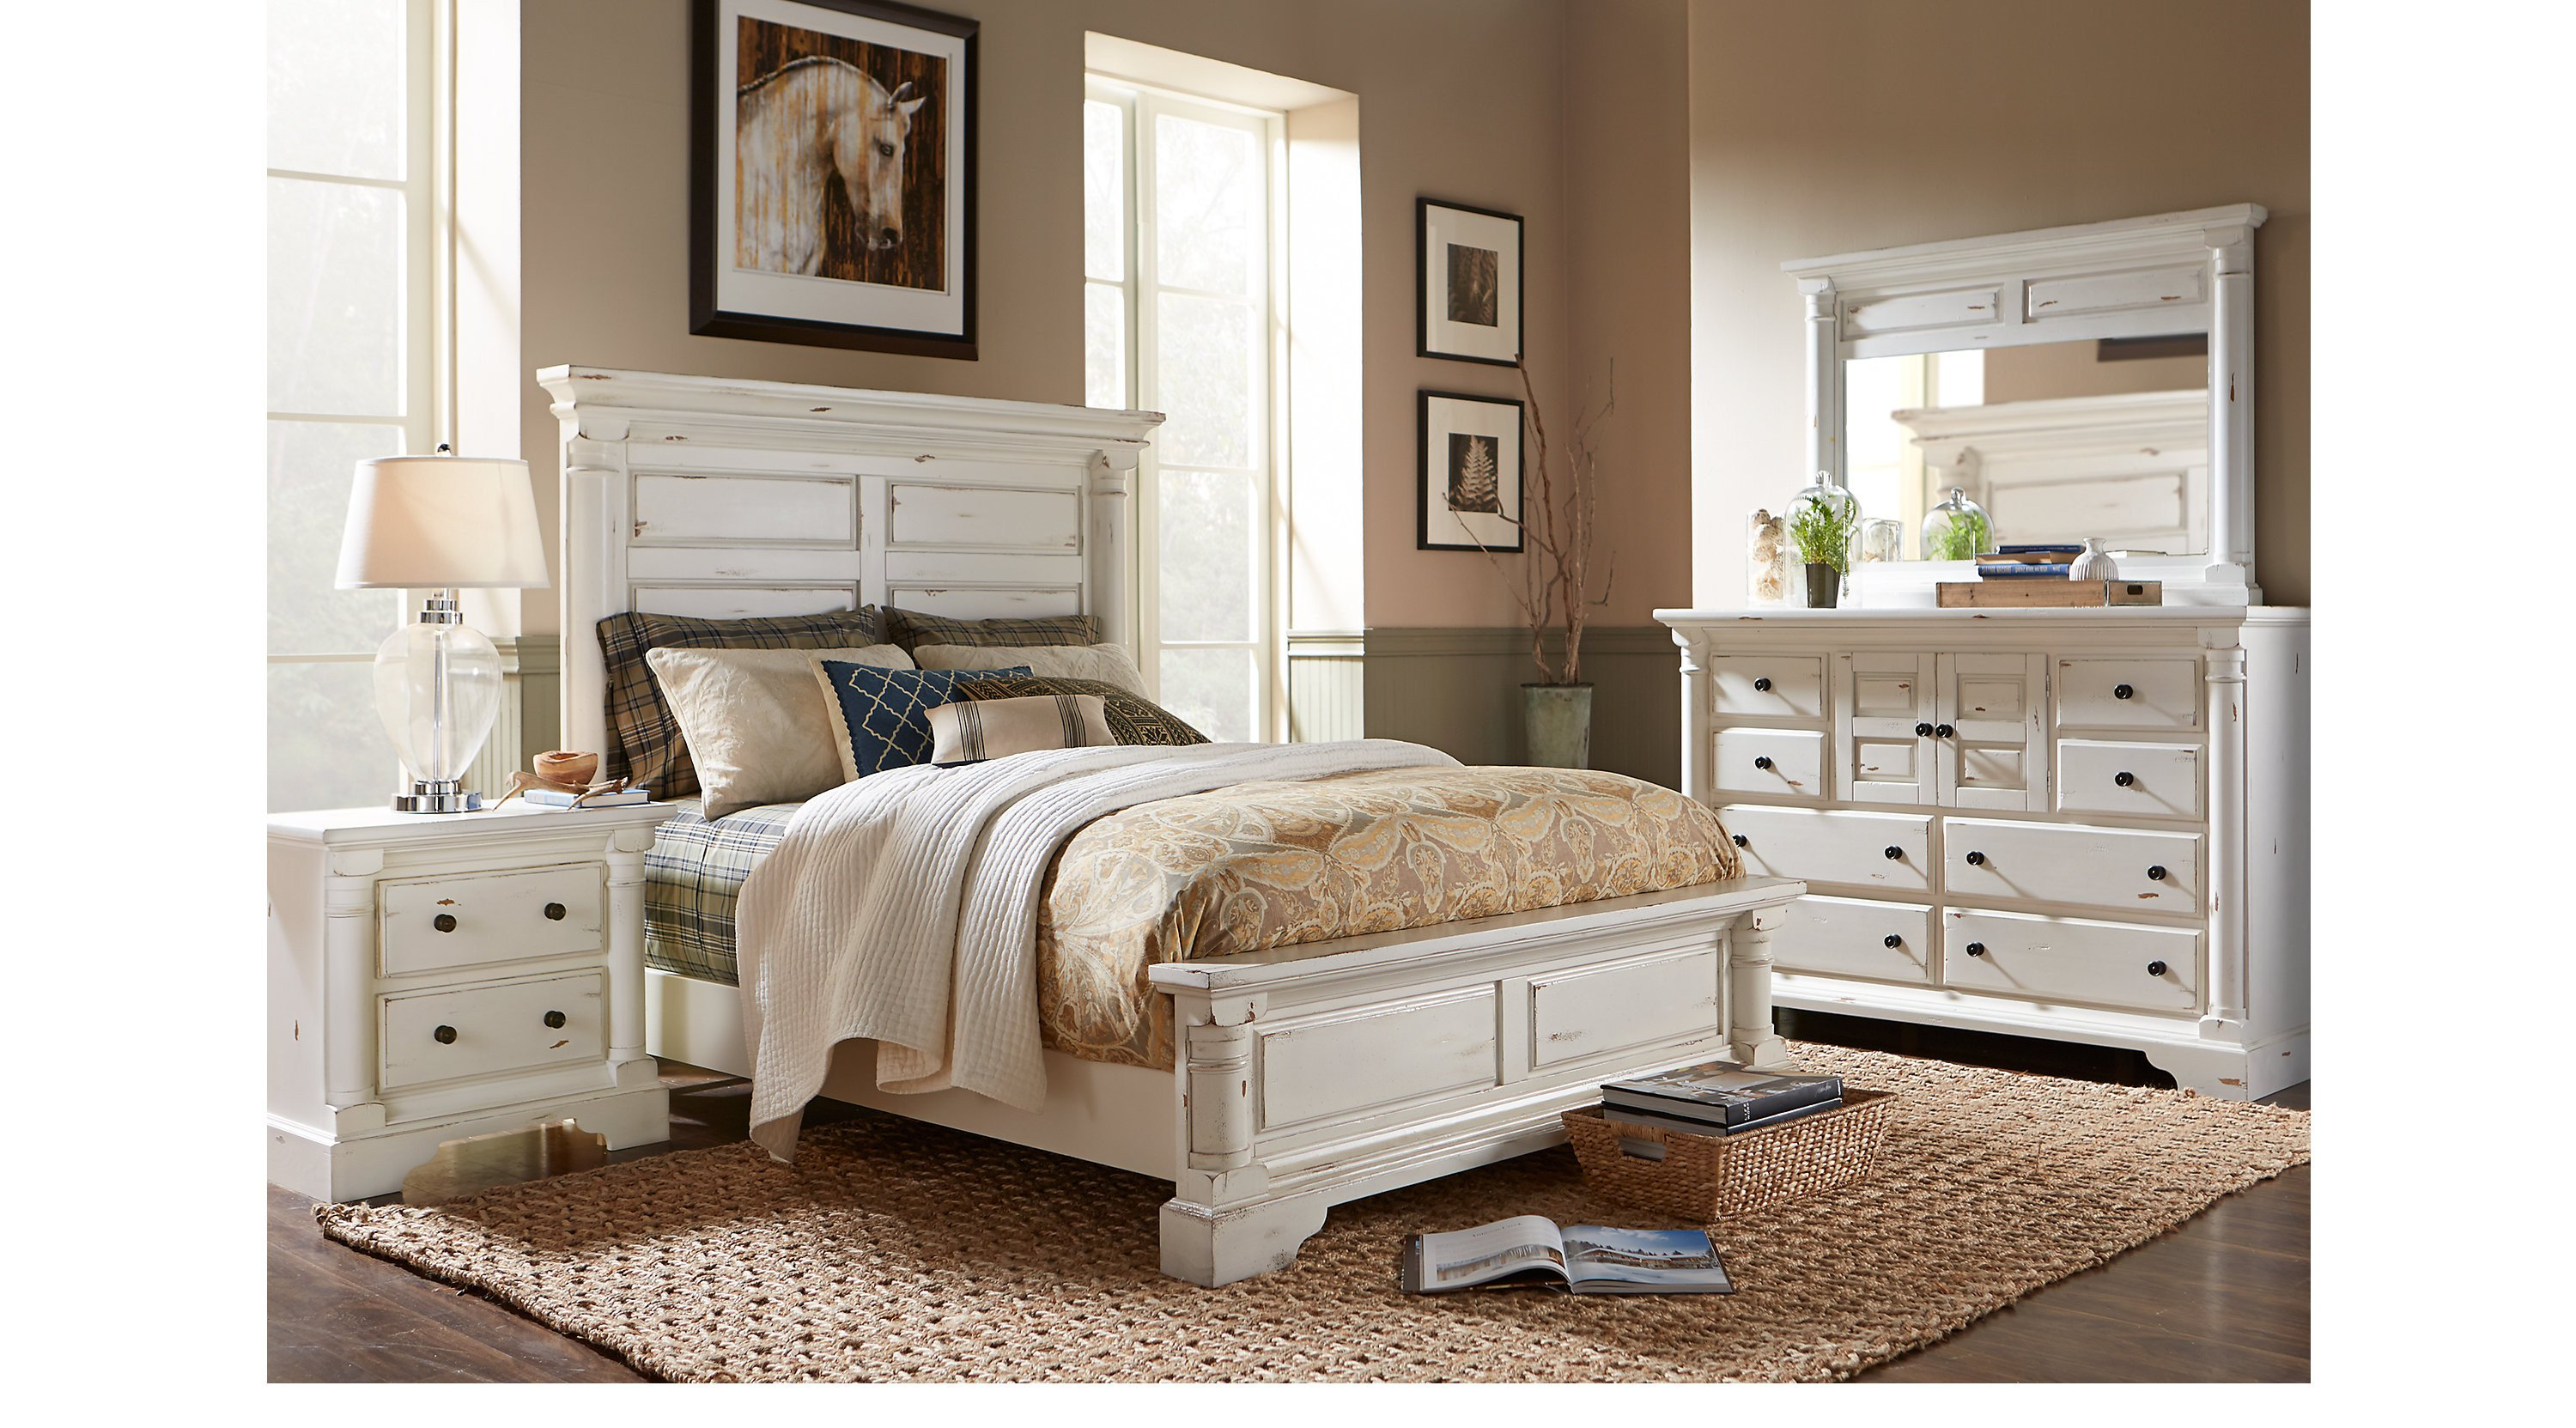 Bedroom Set for Girls Luxury Bestpriceshooversteamvacreplacementp Luxury Bed Back Wall